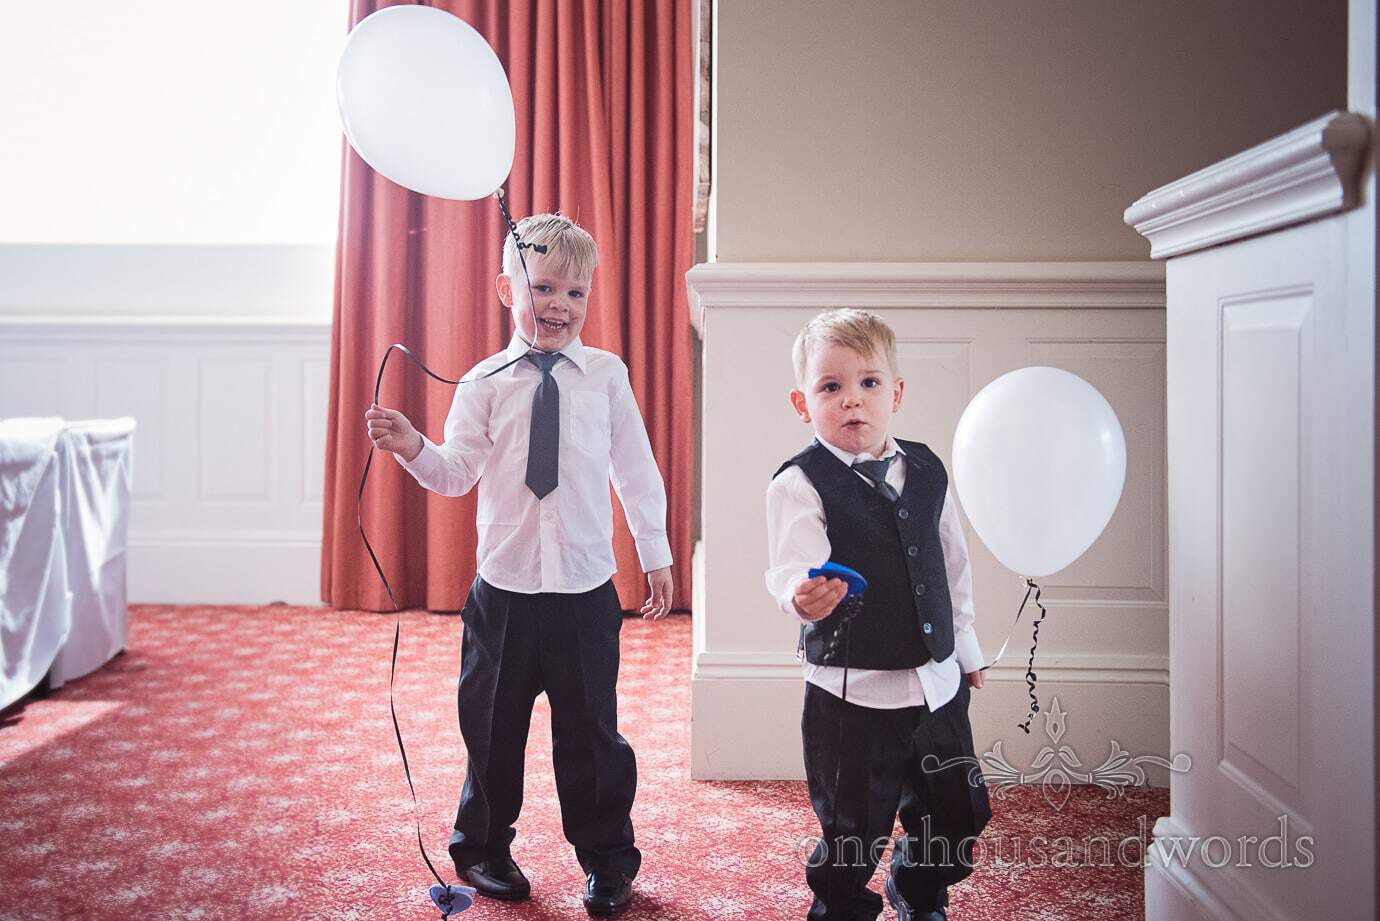 Boys playing with white wedding balloons at black and white themed wedding